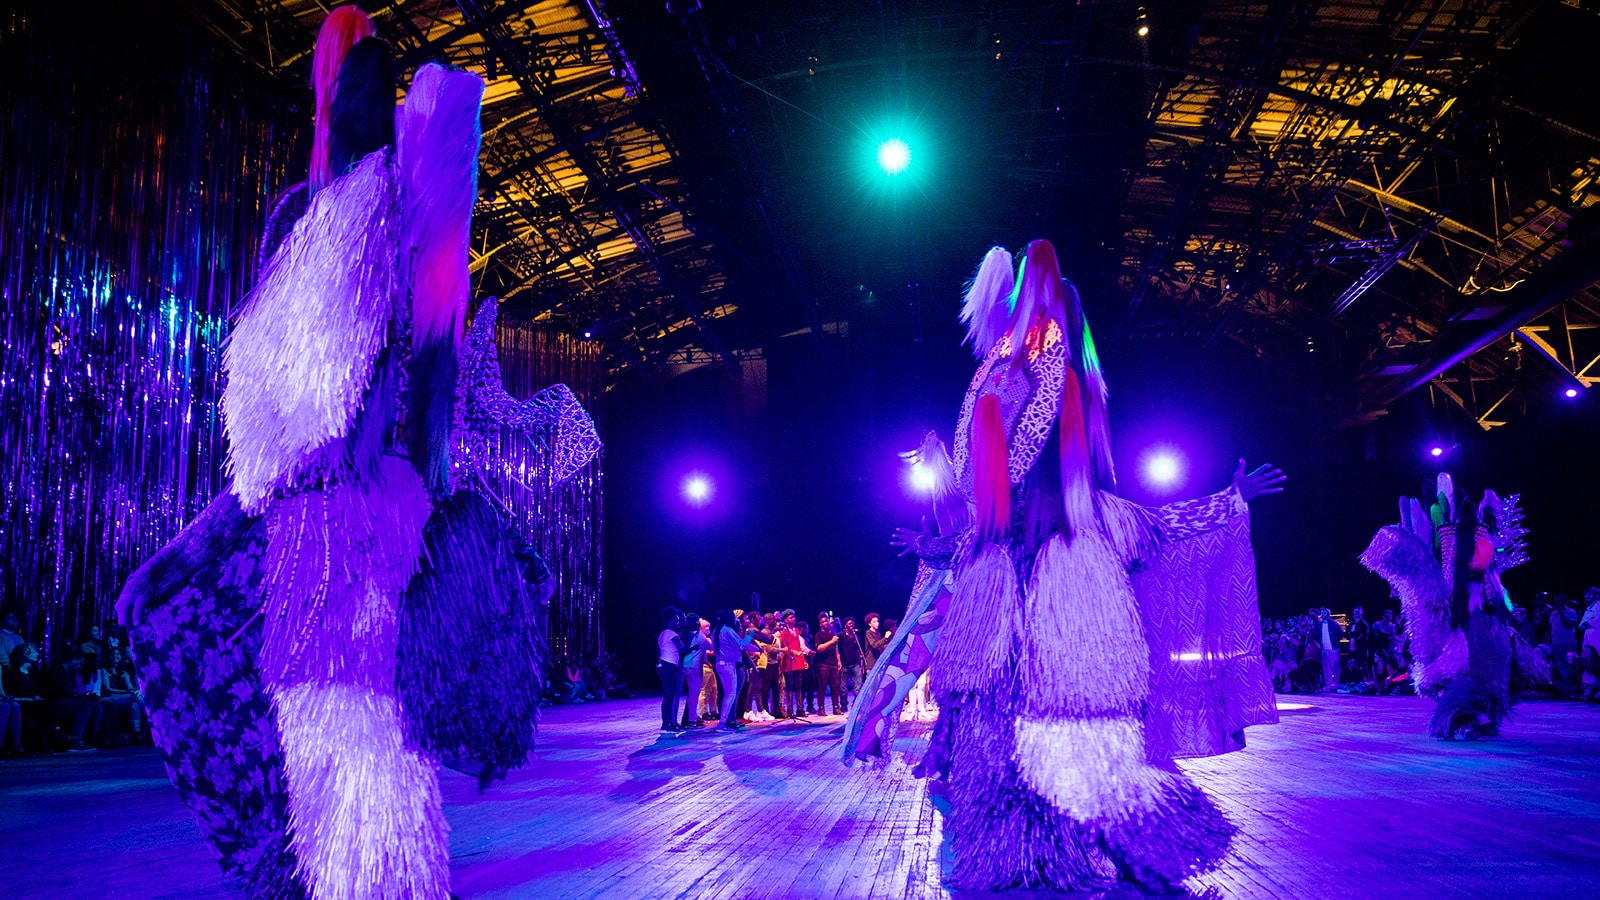 The Let Go, an immersive performance and installation by Nick Cave at Park Avenue Armory